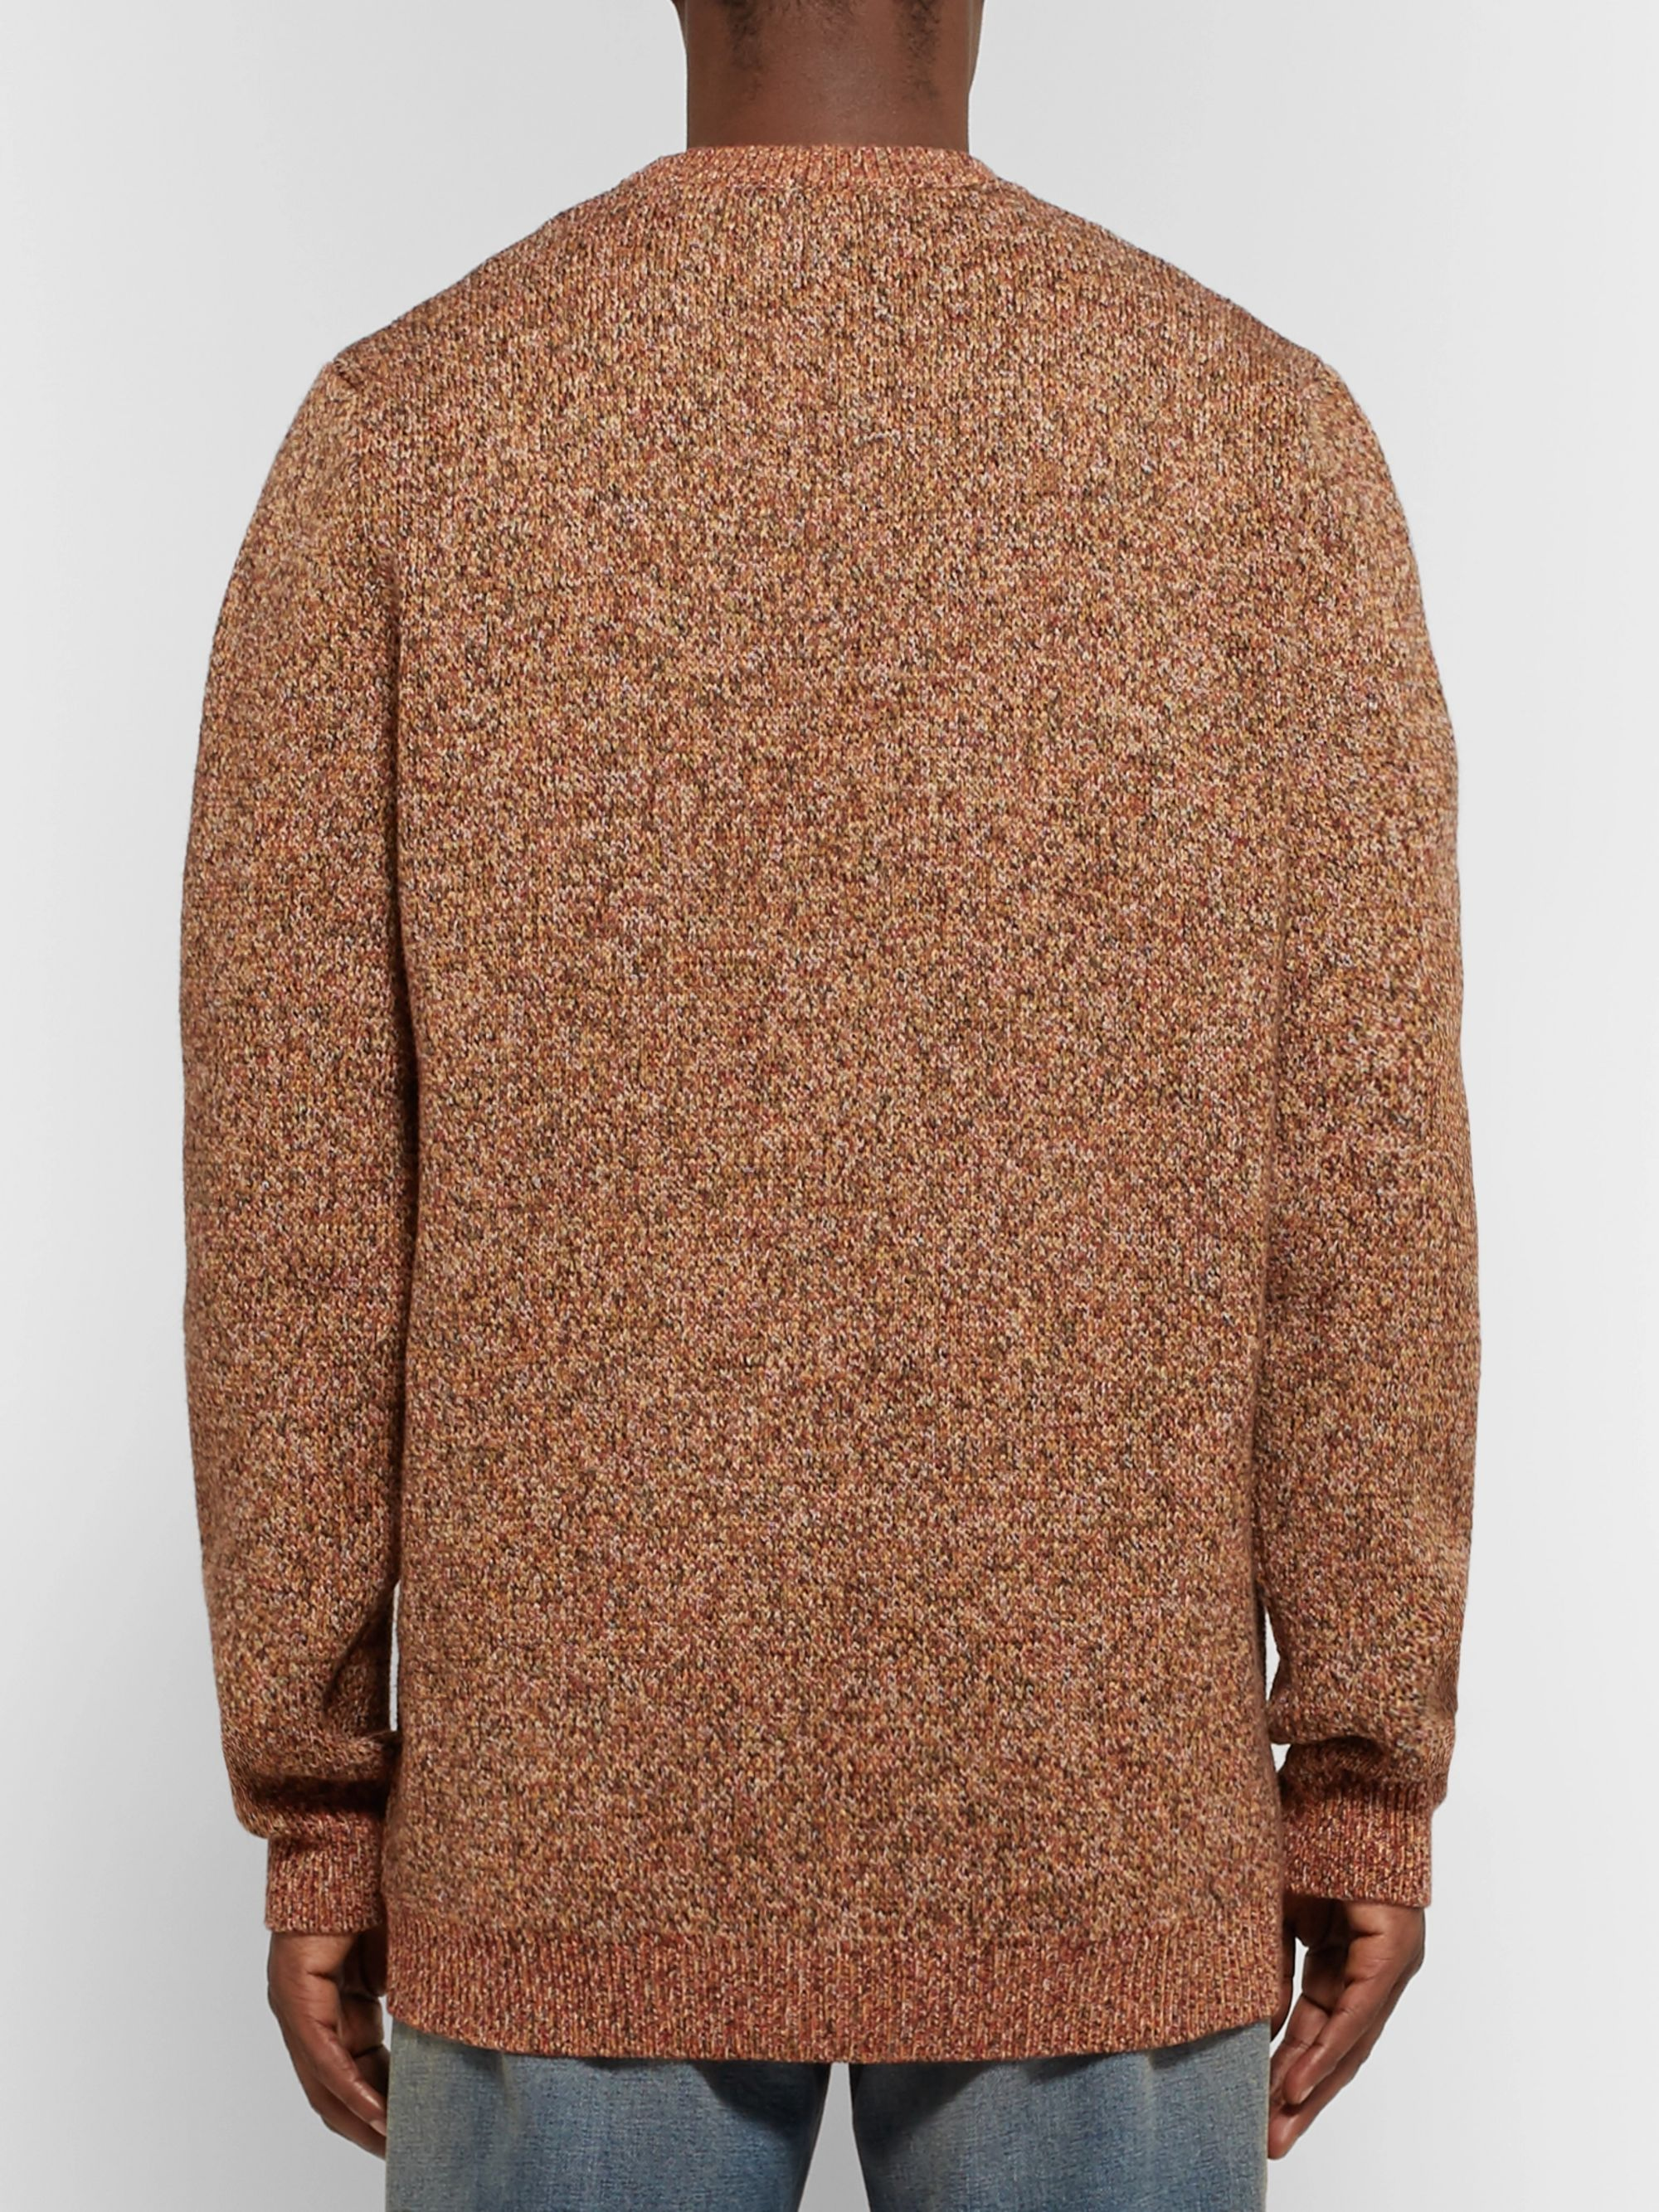 Gucci Oversized Intarsia Mélange Wool Sweater